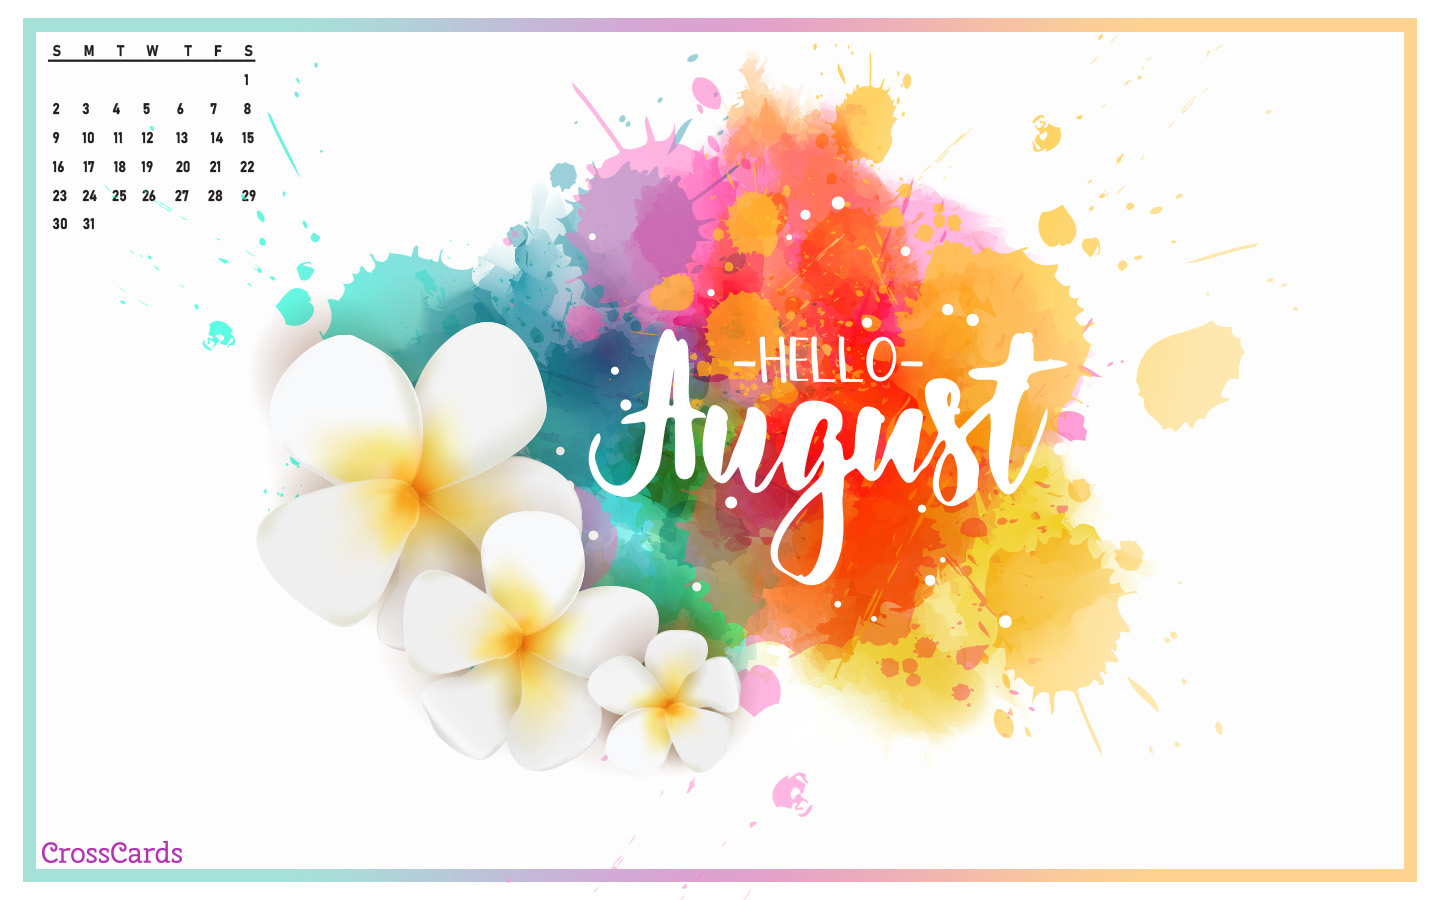 August 2020 - Hello August! mobile phone wallpaper